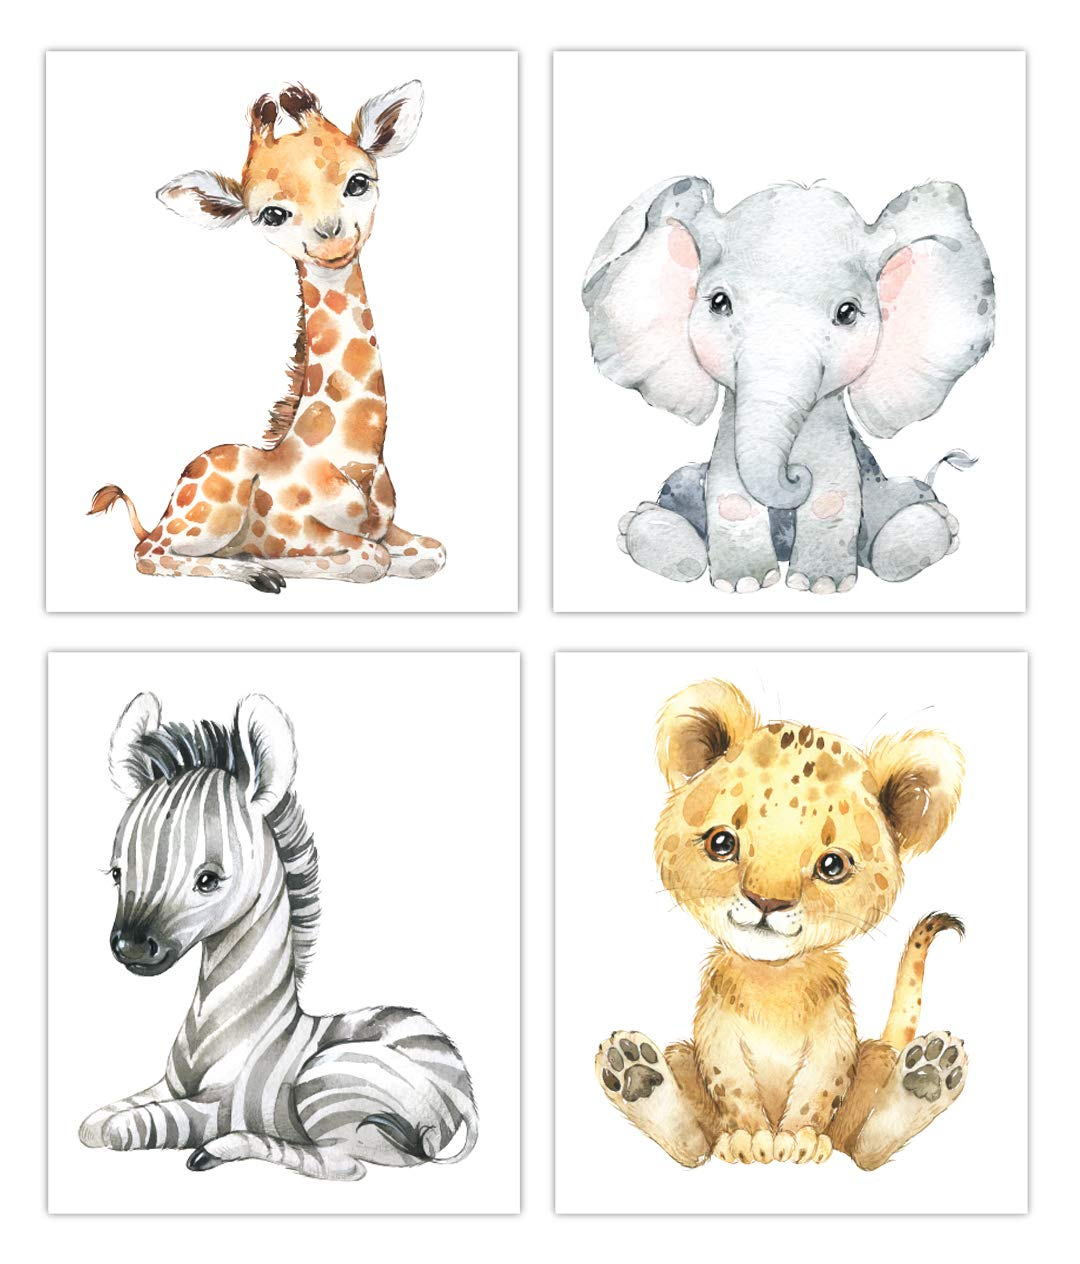 Designs by Maria Inc. Safari Babies Watercolor Animals Prints Set of 4 (Unframed) Nursery Decor Art (8x10) (OPTION 2)